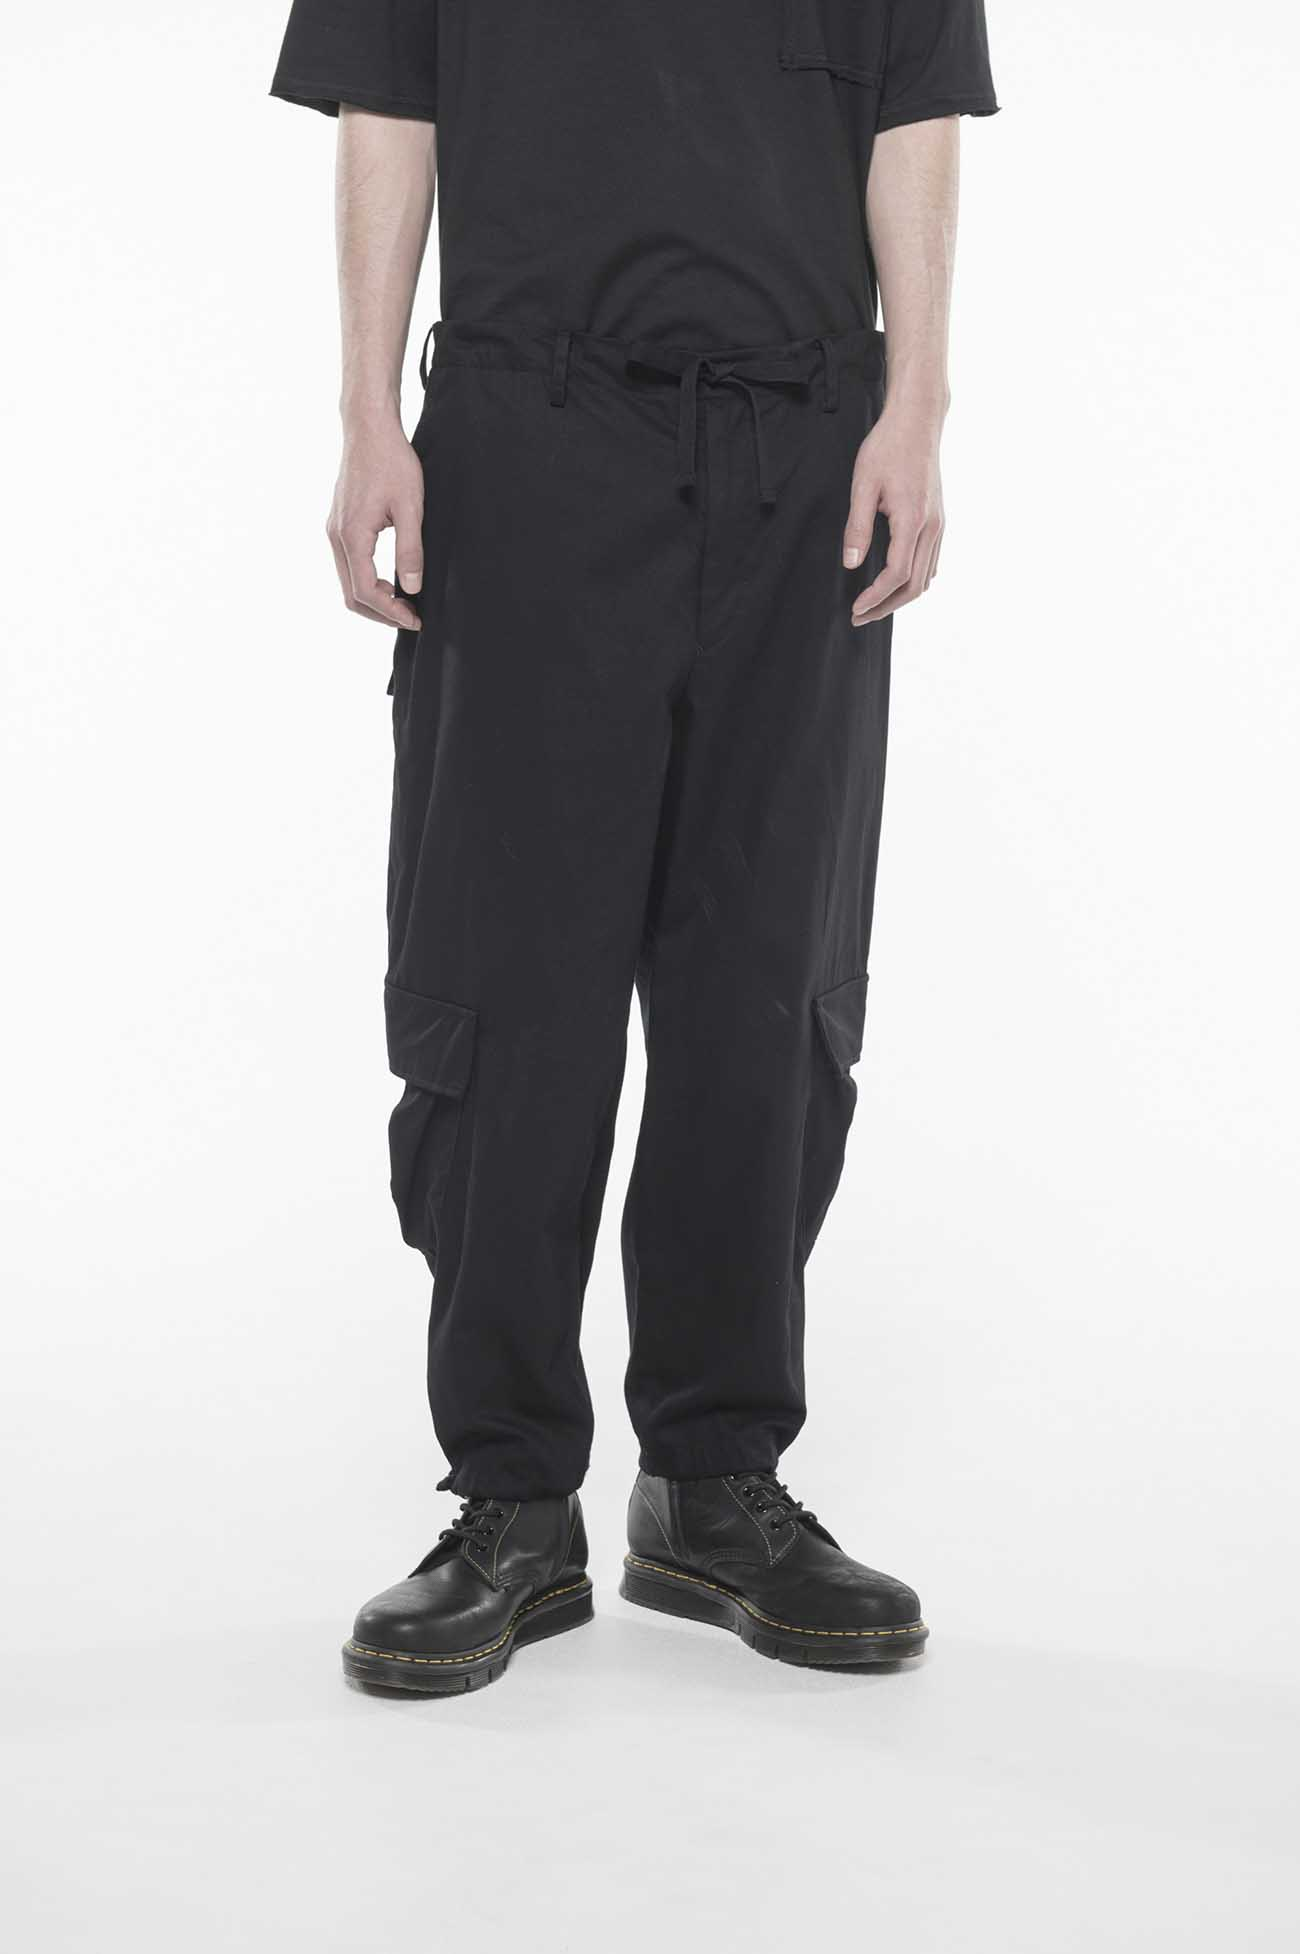 20/Cotton Twill Washer Wide Cargo Pants